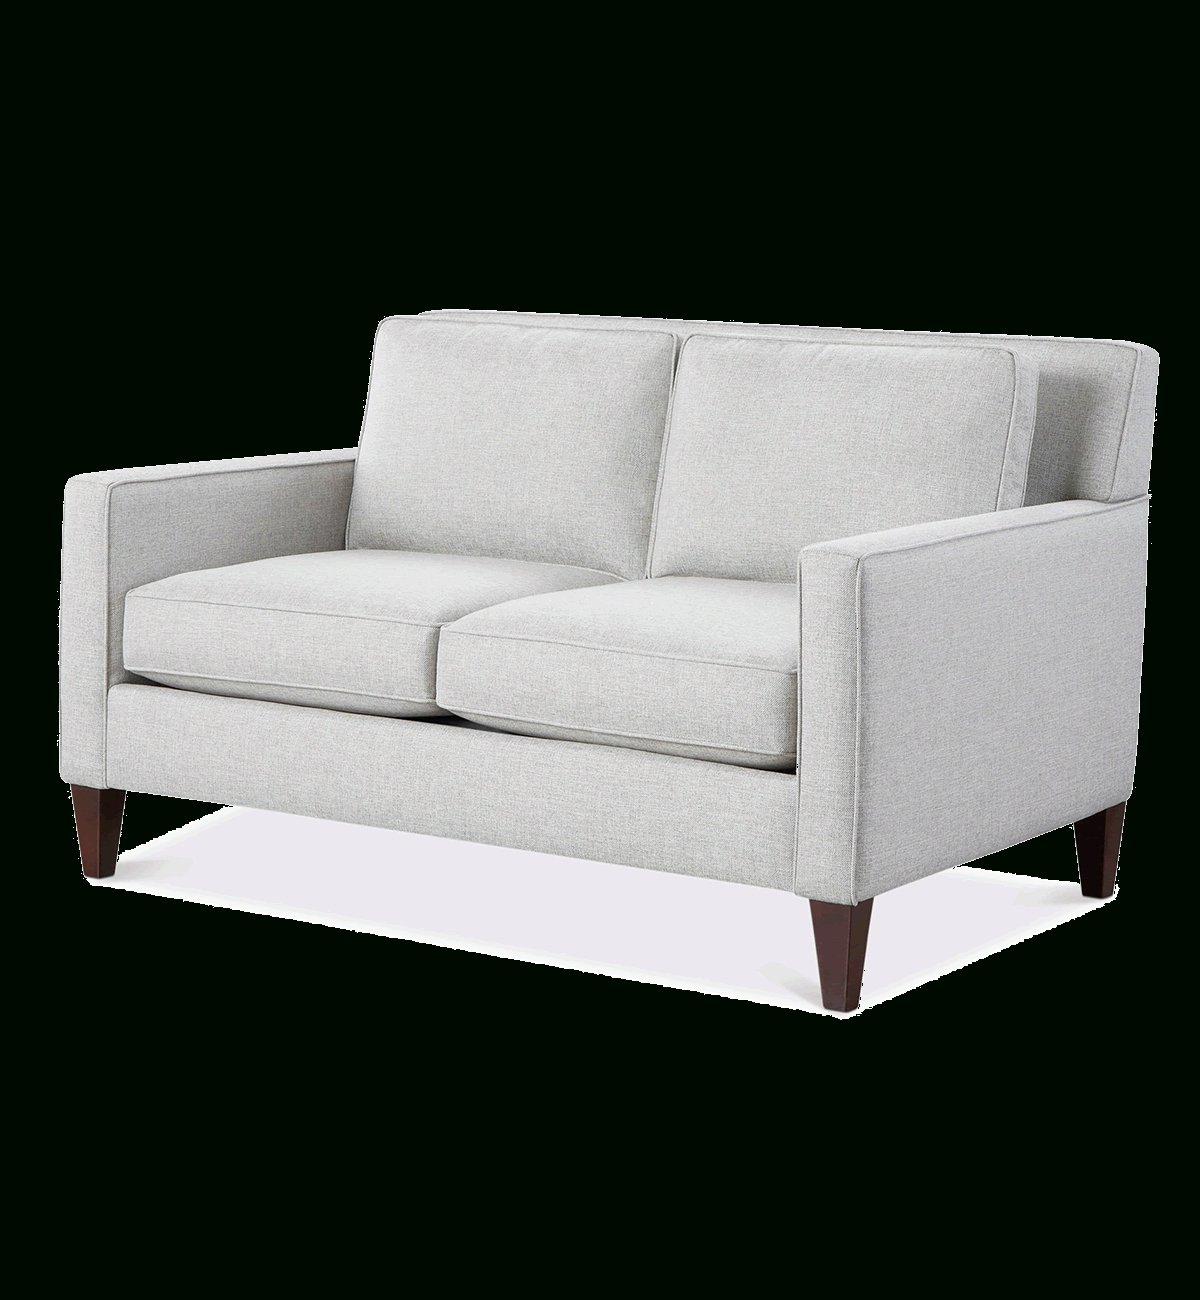 Macys Sectional Sofas Within Most Recent Sectional Sofas Couches And Sofas – Macy's (View 16 of 20)